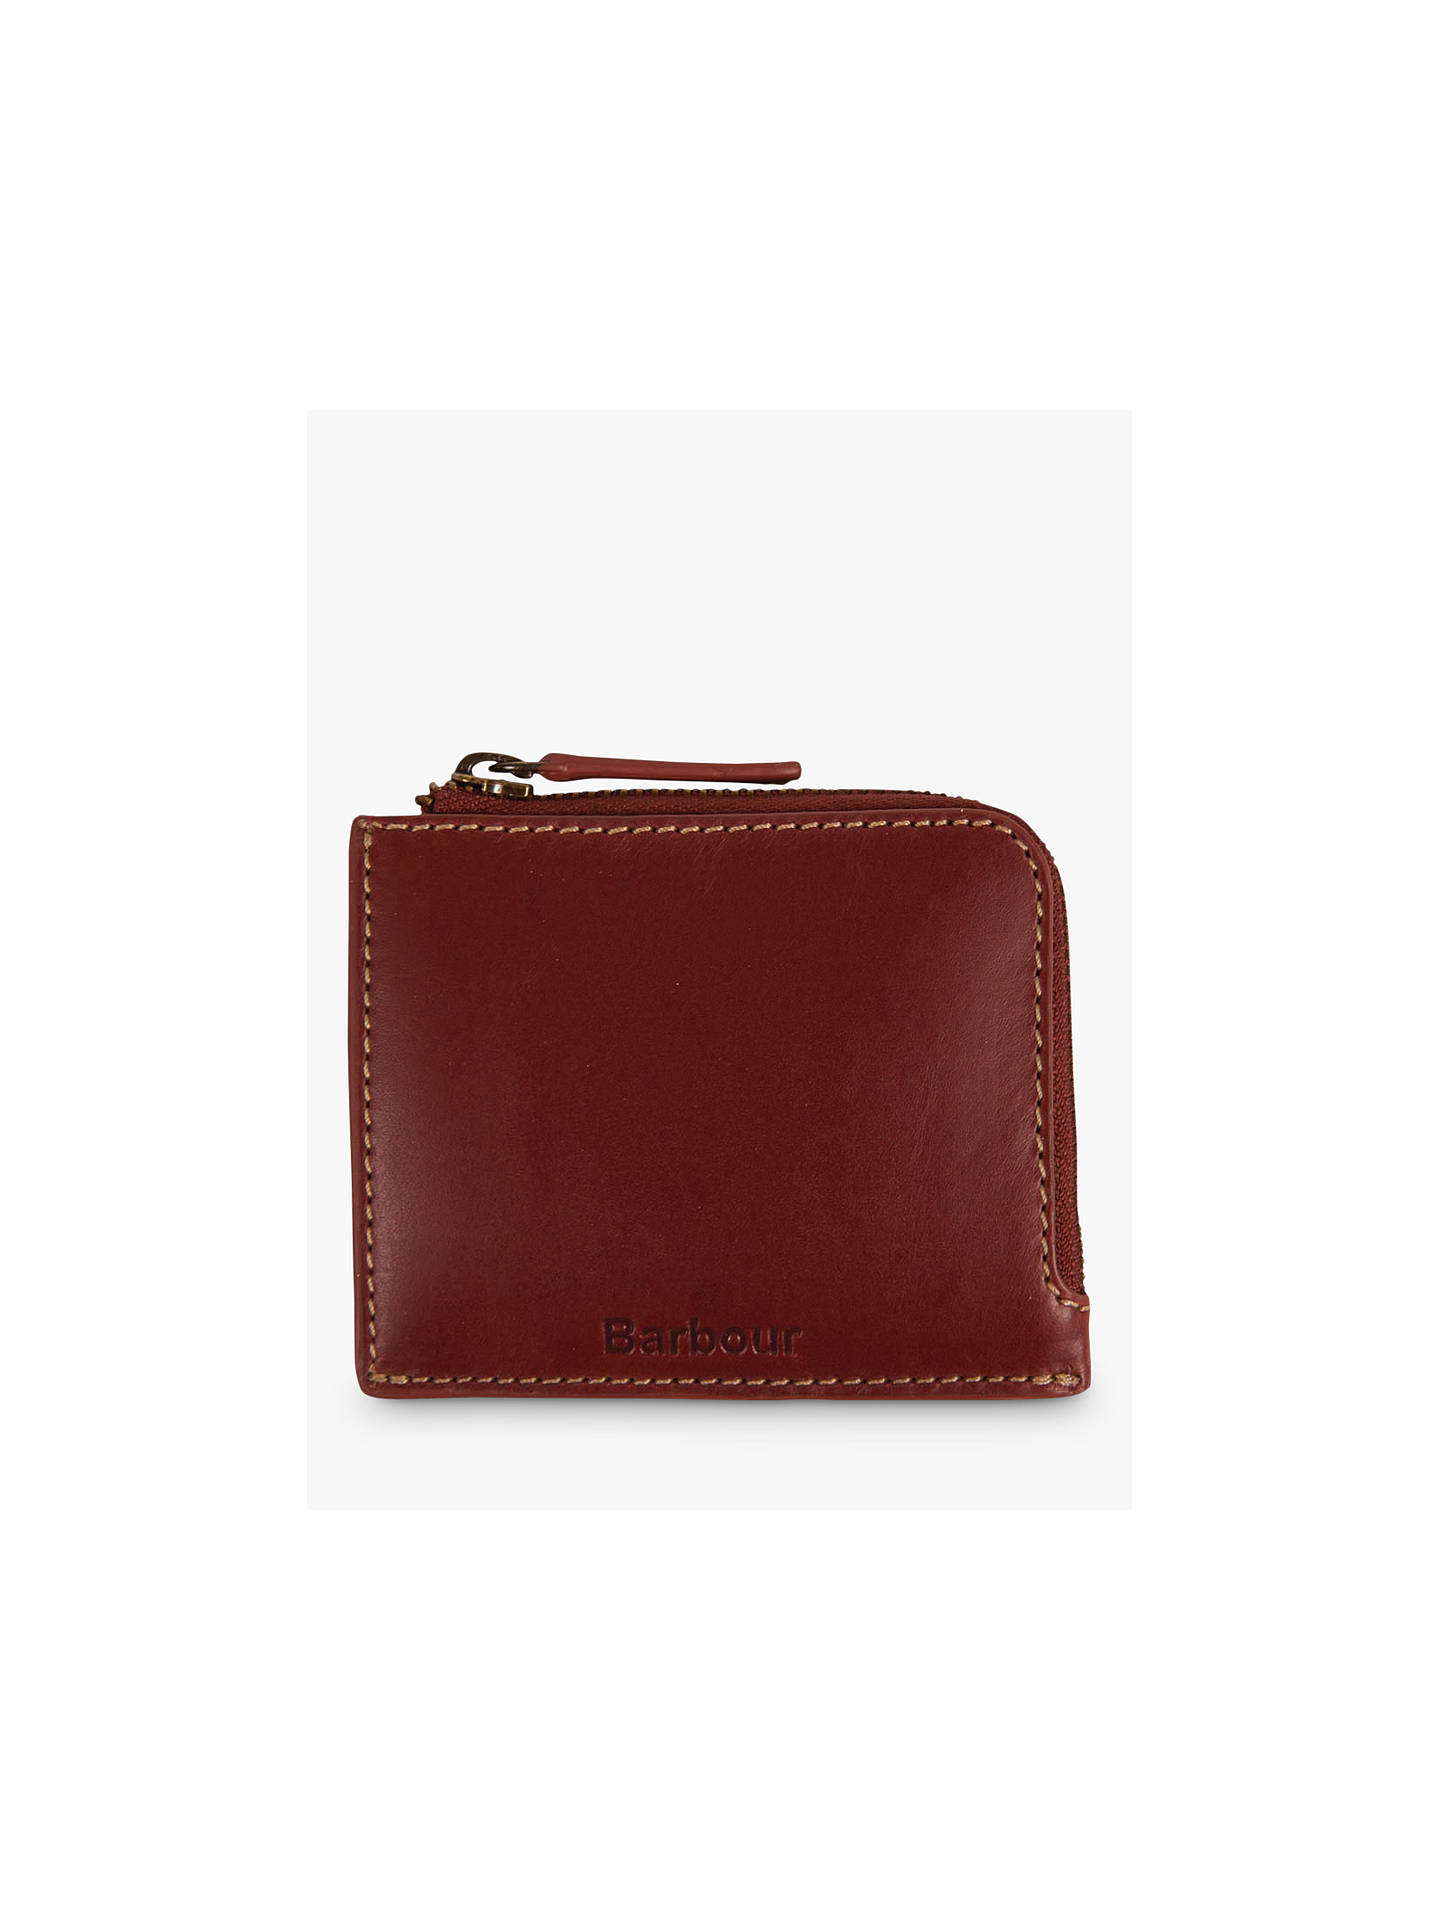 Barbour Hadleigh Leather Zip Up Coin Wallet,